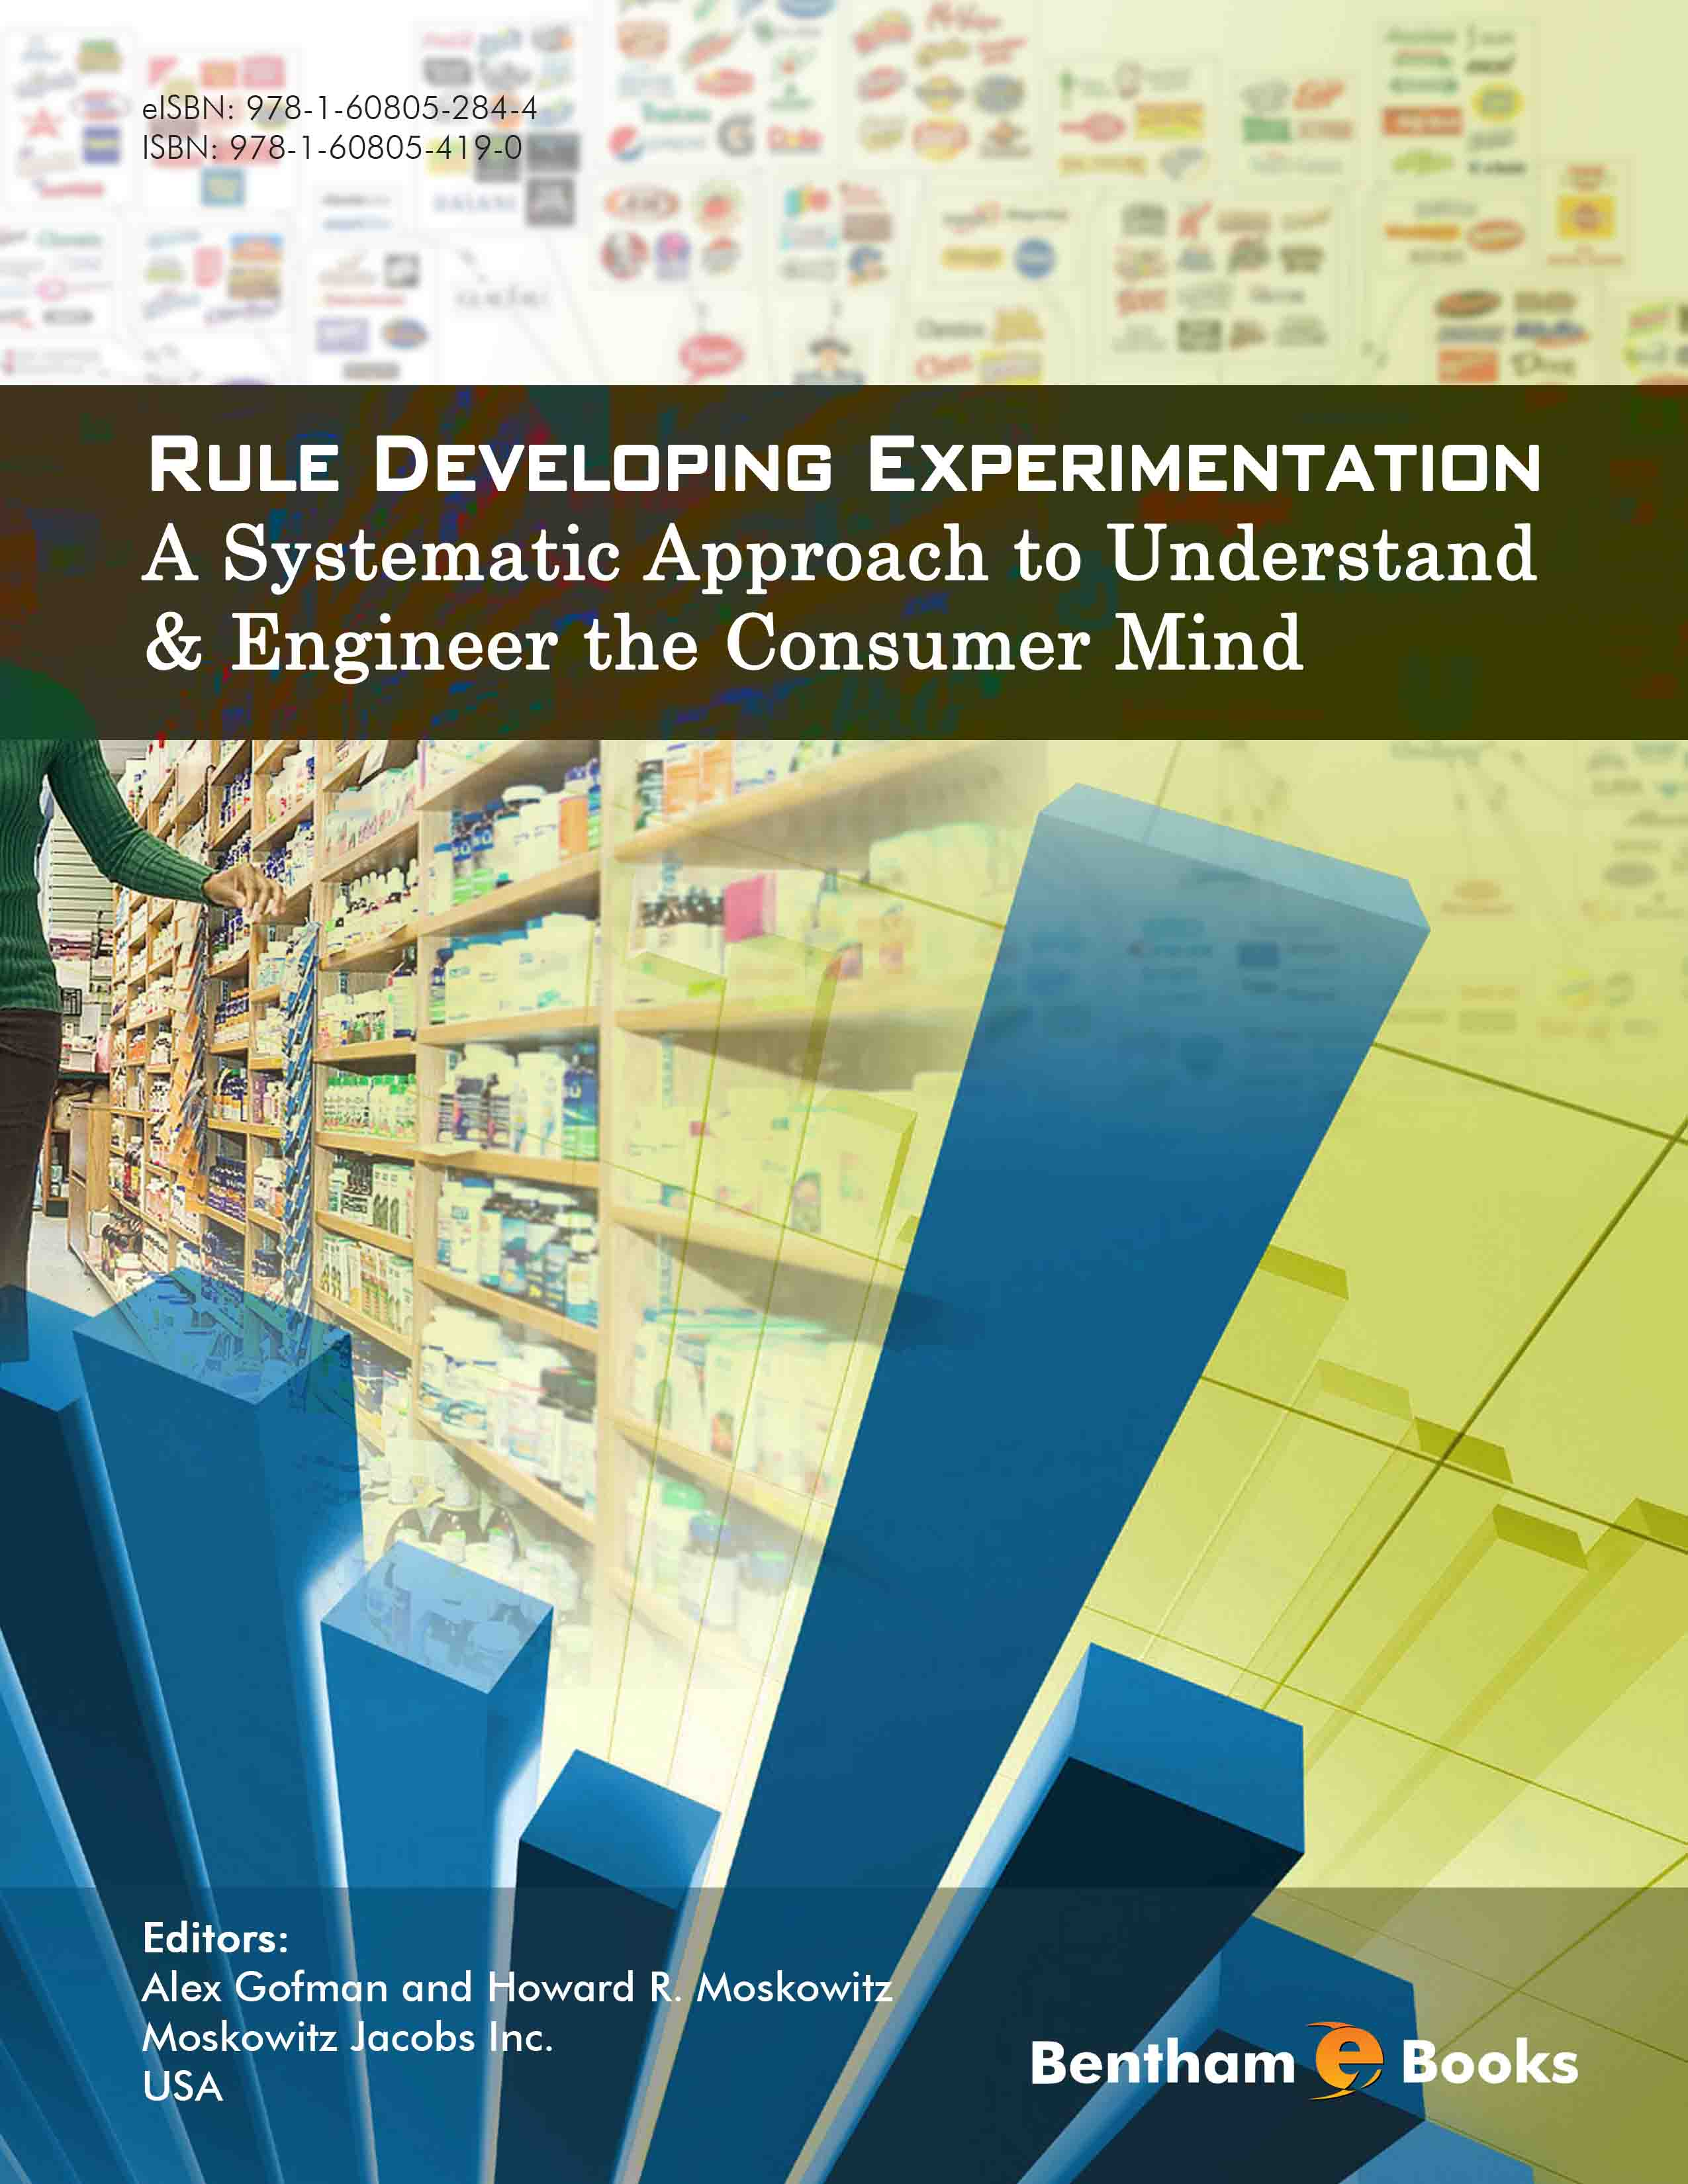 Rule Developing Experimentation: A Systematic Approach to Understand & Engineer the Consumer Mind